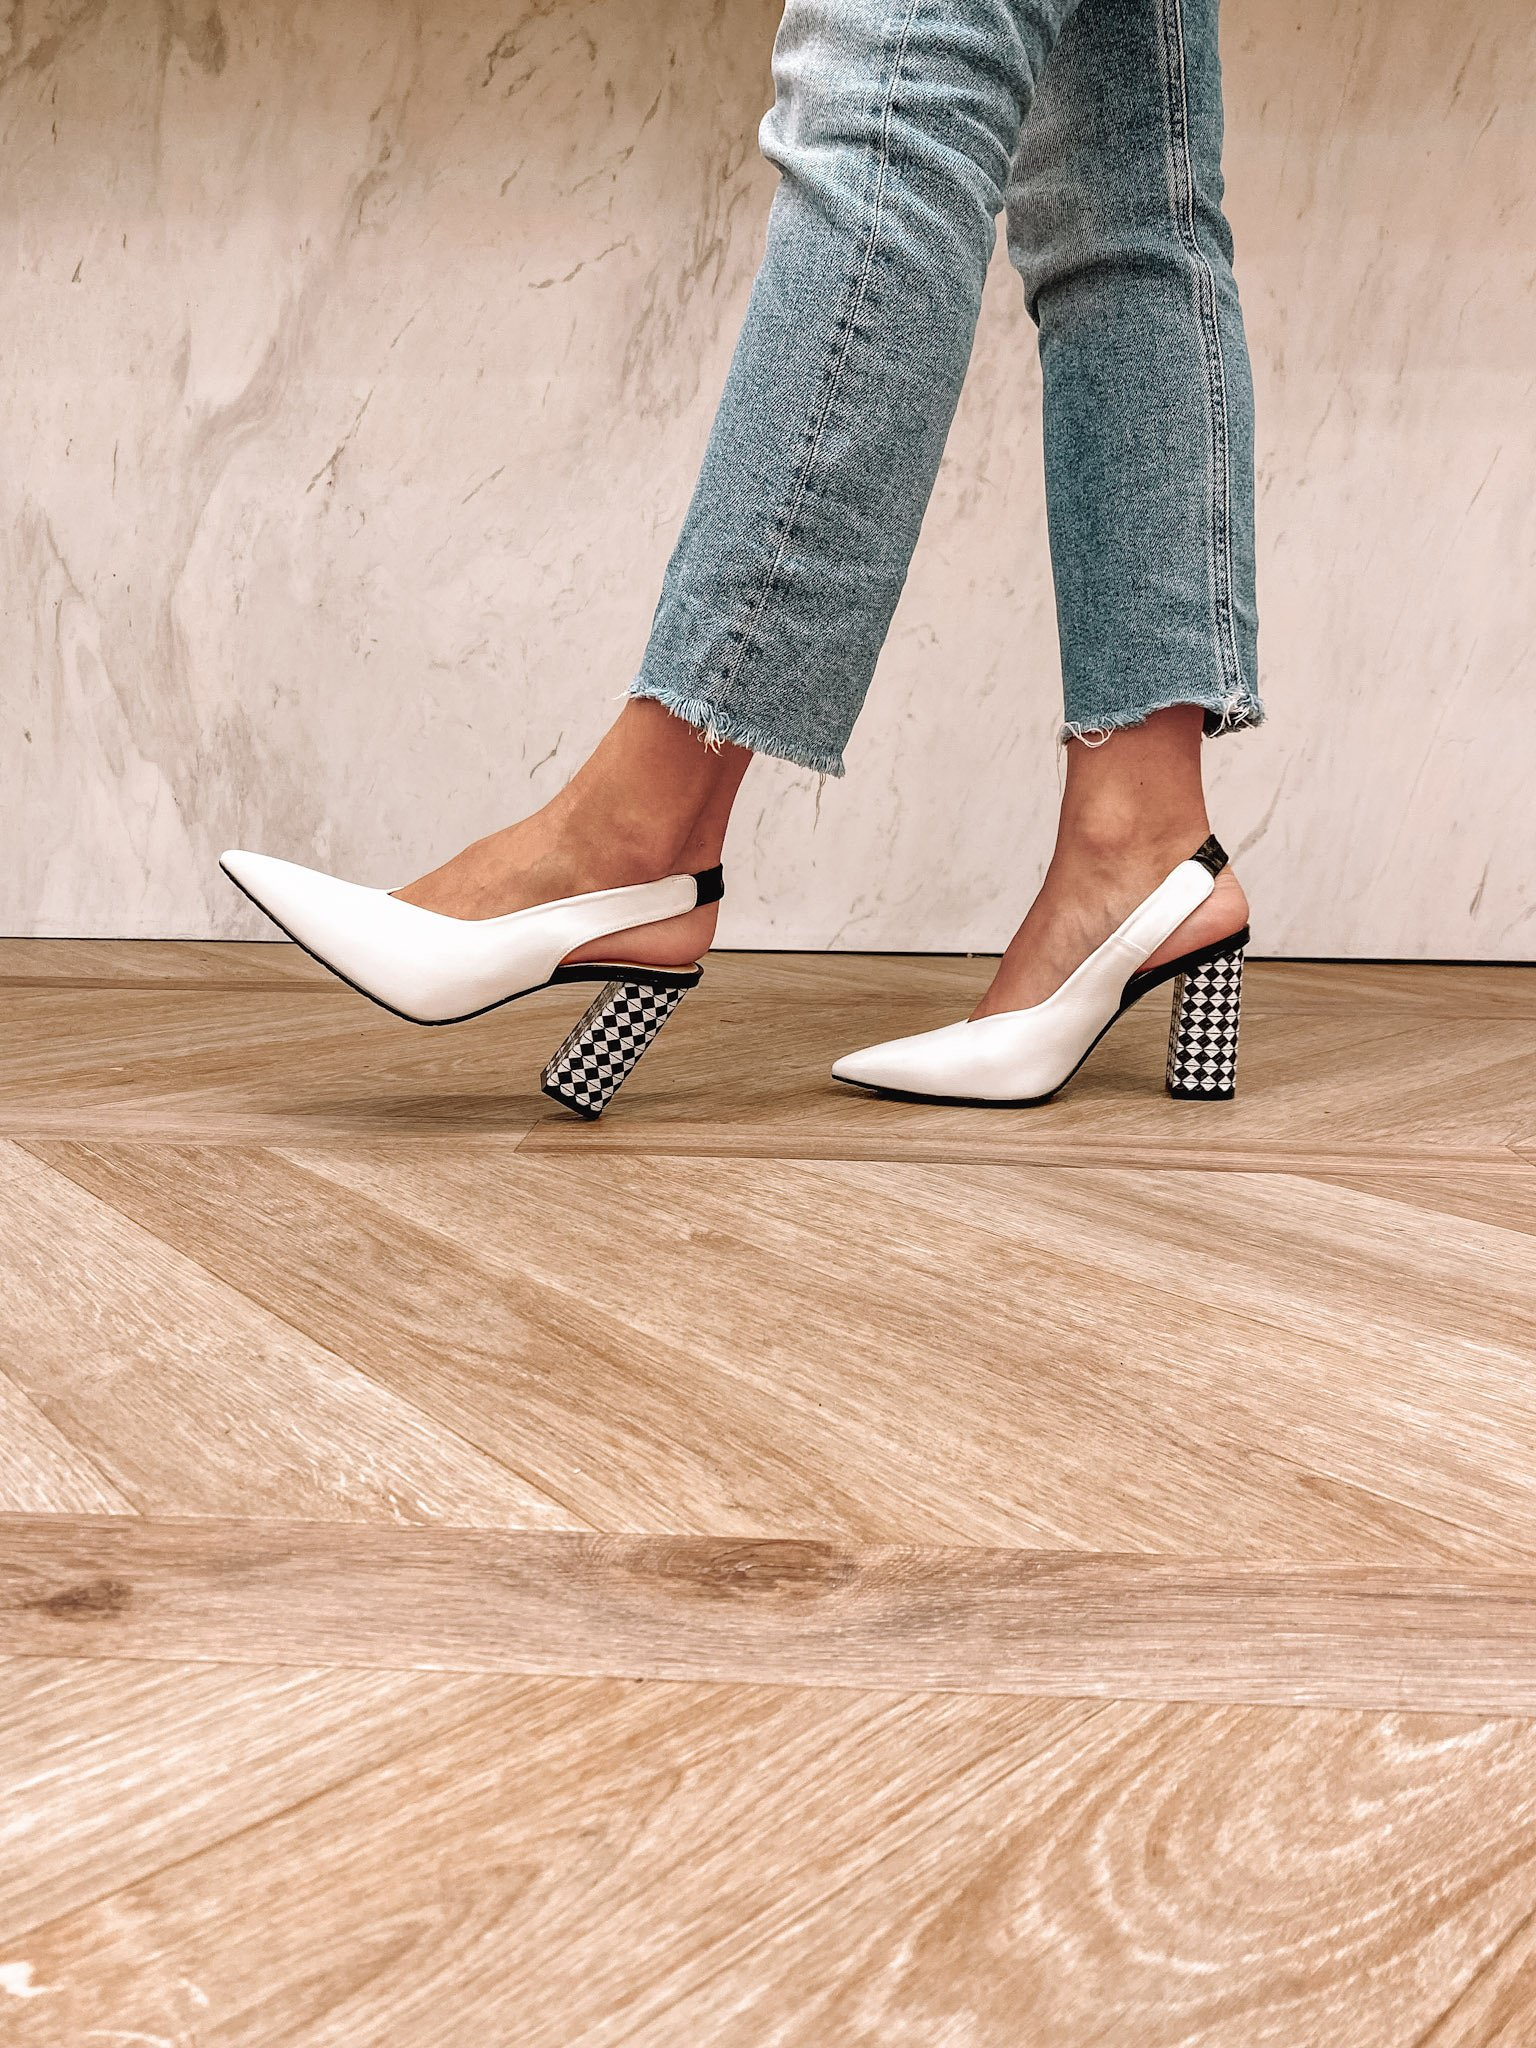 Chic met Lodi pumps